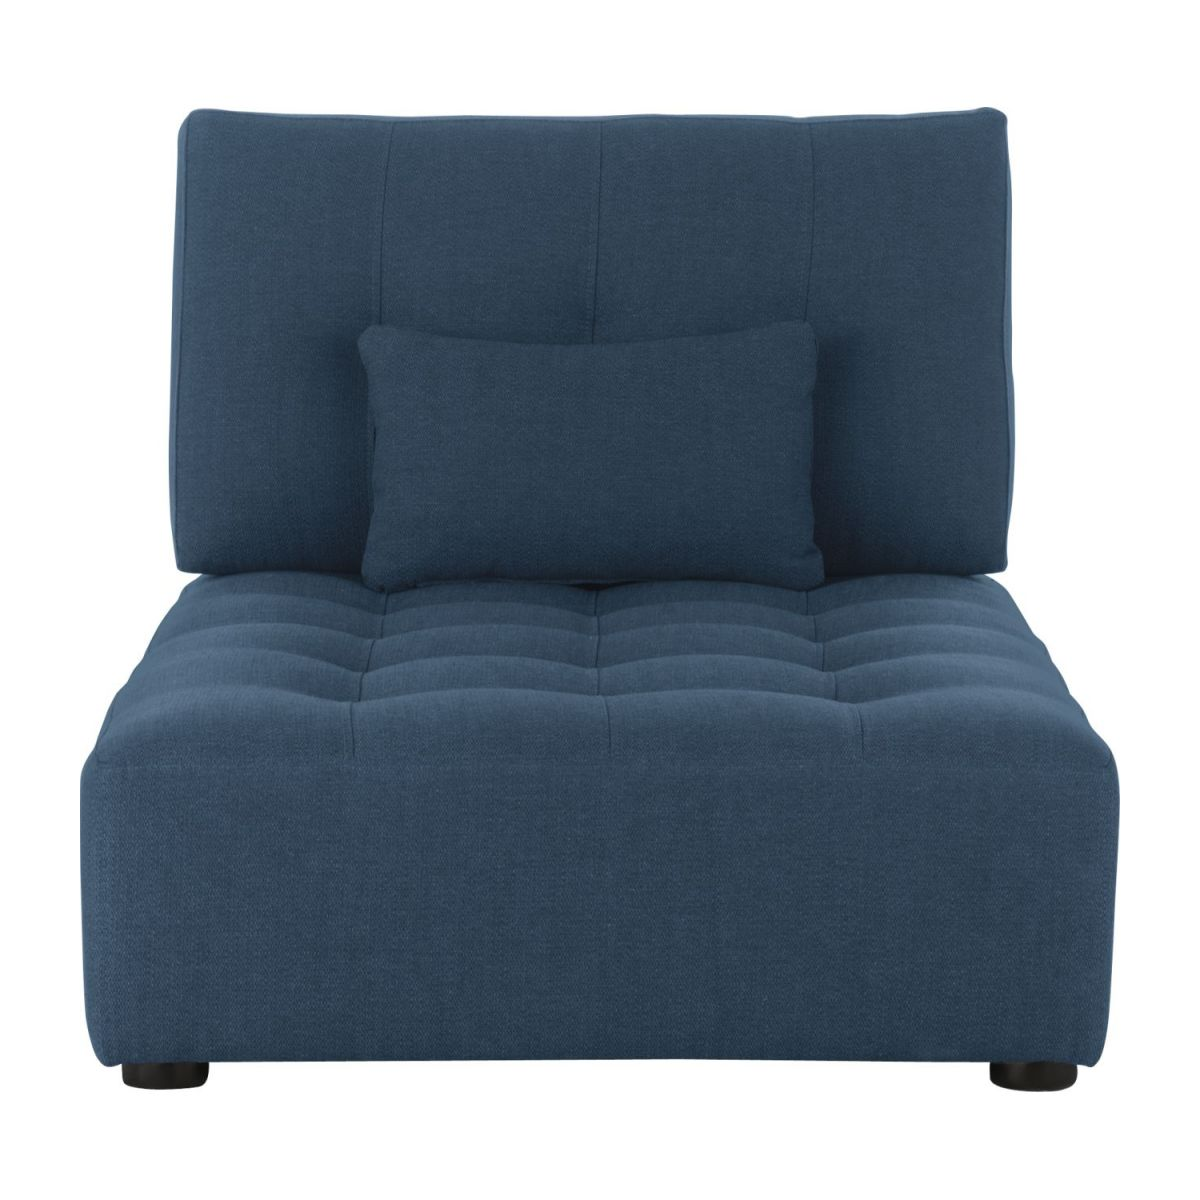 Chaiselongue de tela-azul n°3